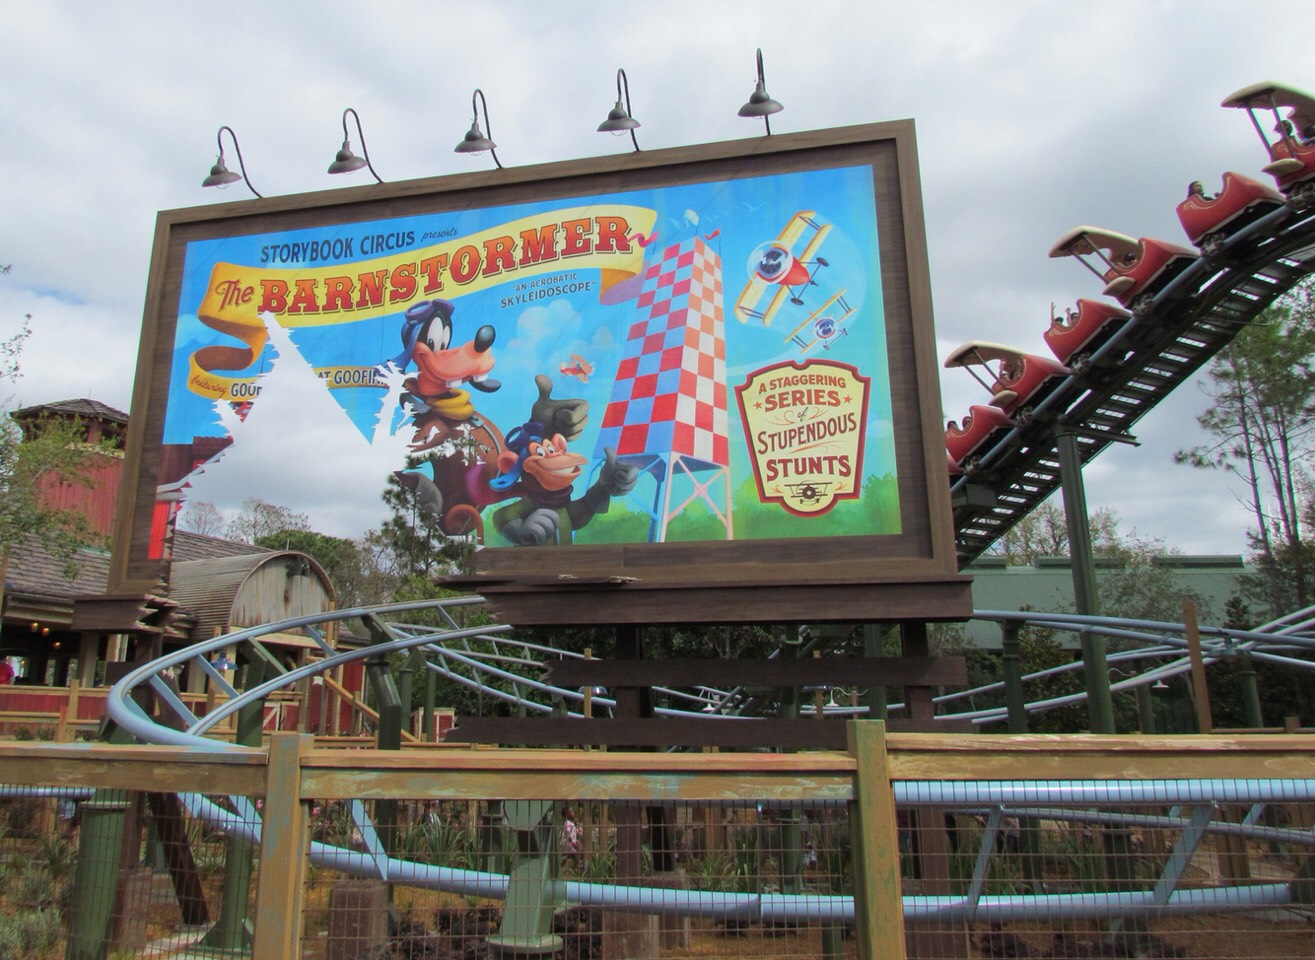 Barnstormer Take flight above Storybook Circus for a thrilling, junior roller coaster ride. Great ride for kids!  Height: 35in or taller FP+: Yes